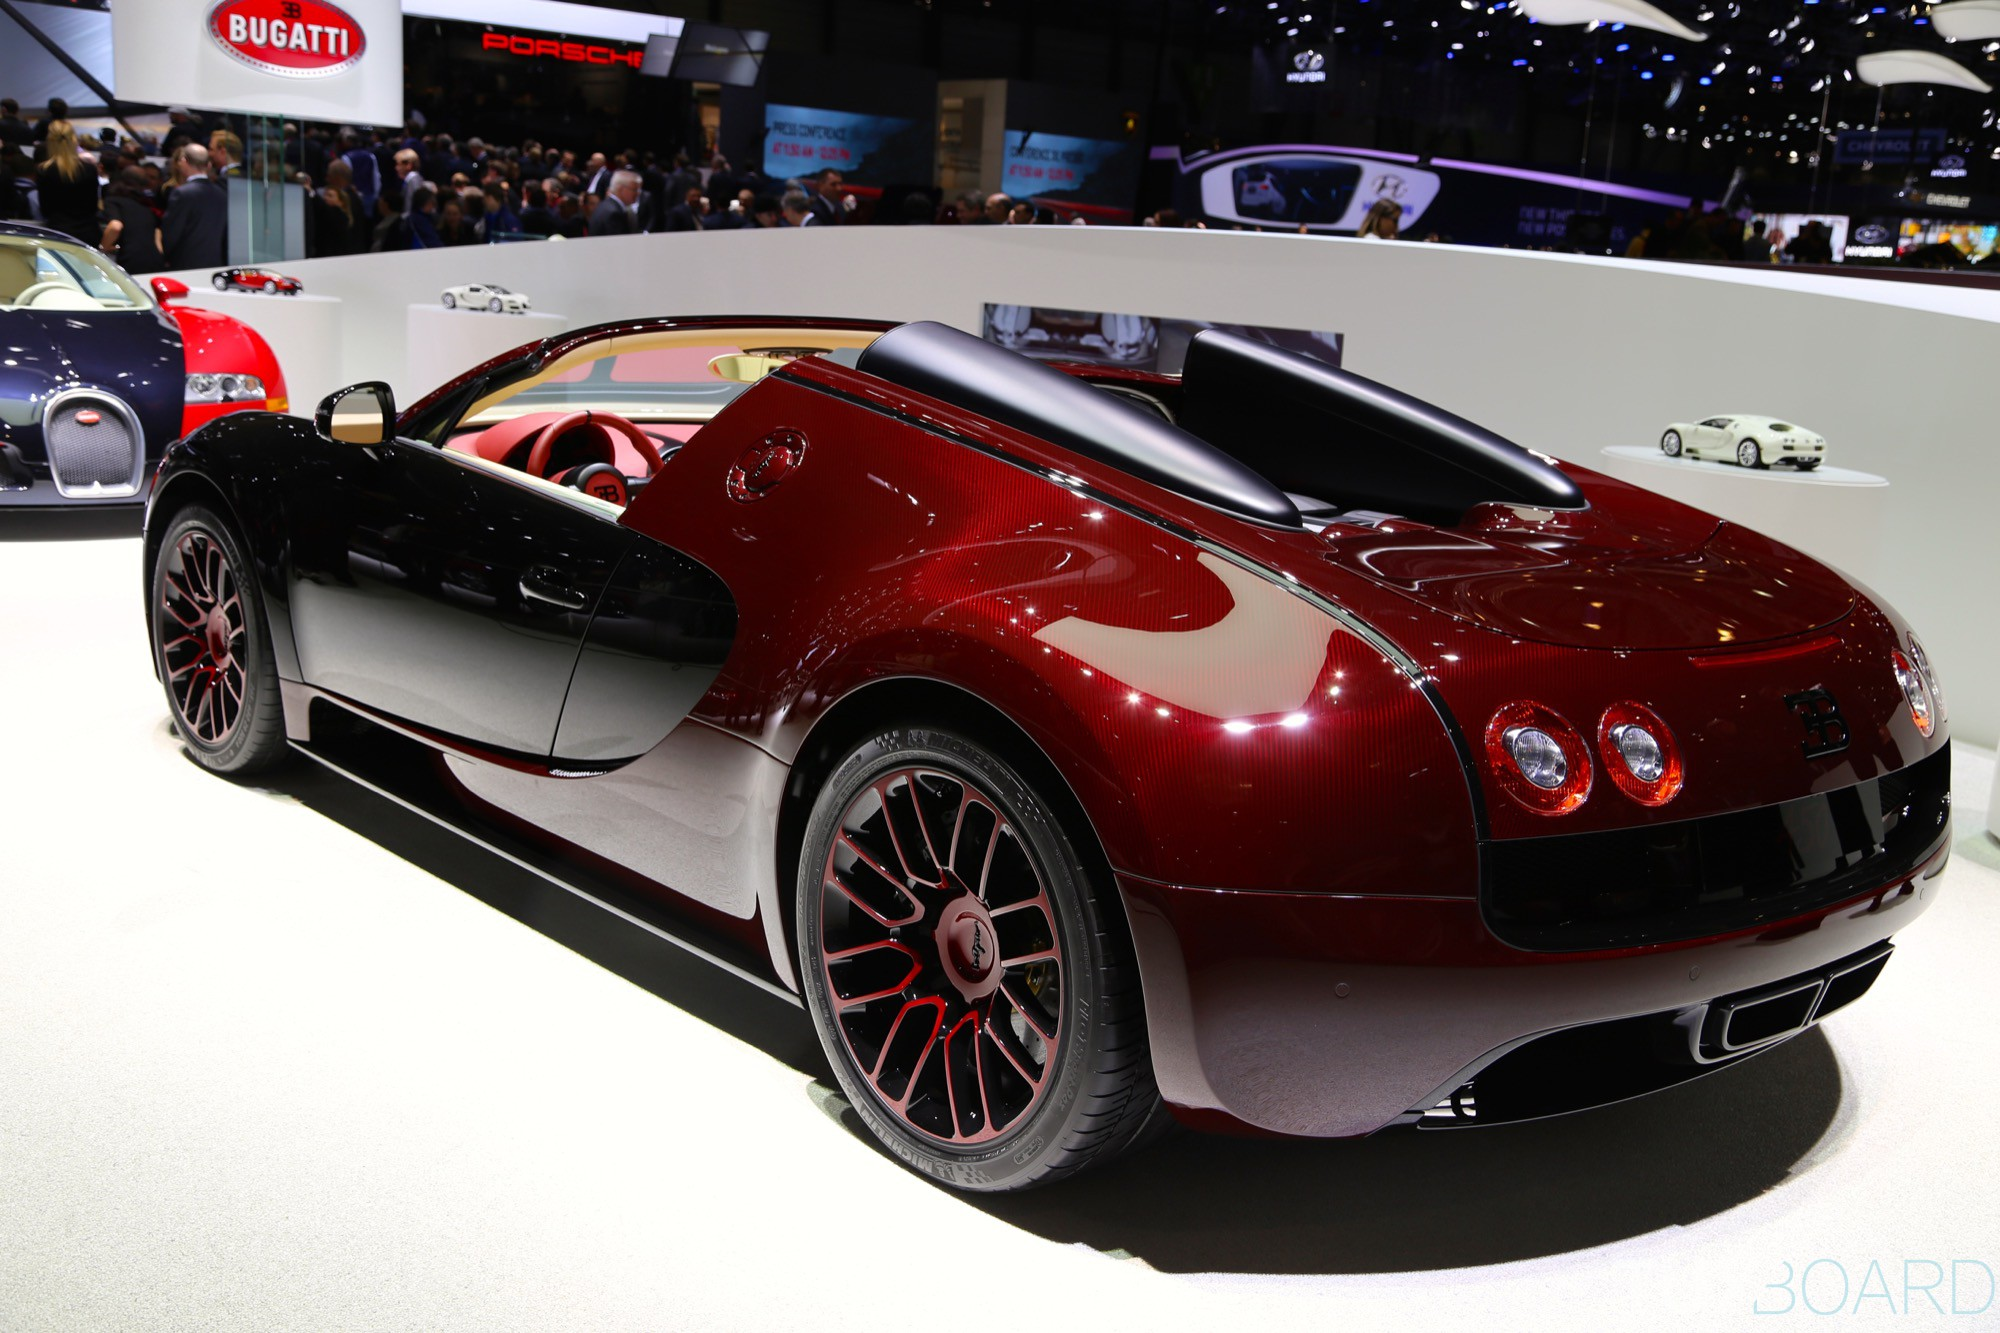 2015 Bugatti Veyron Grand Sport Vitesse La Finale photo - 2